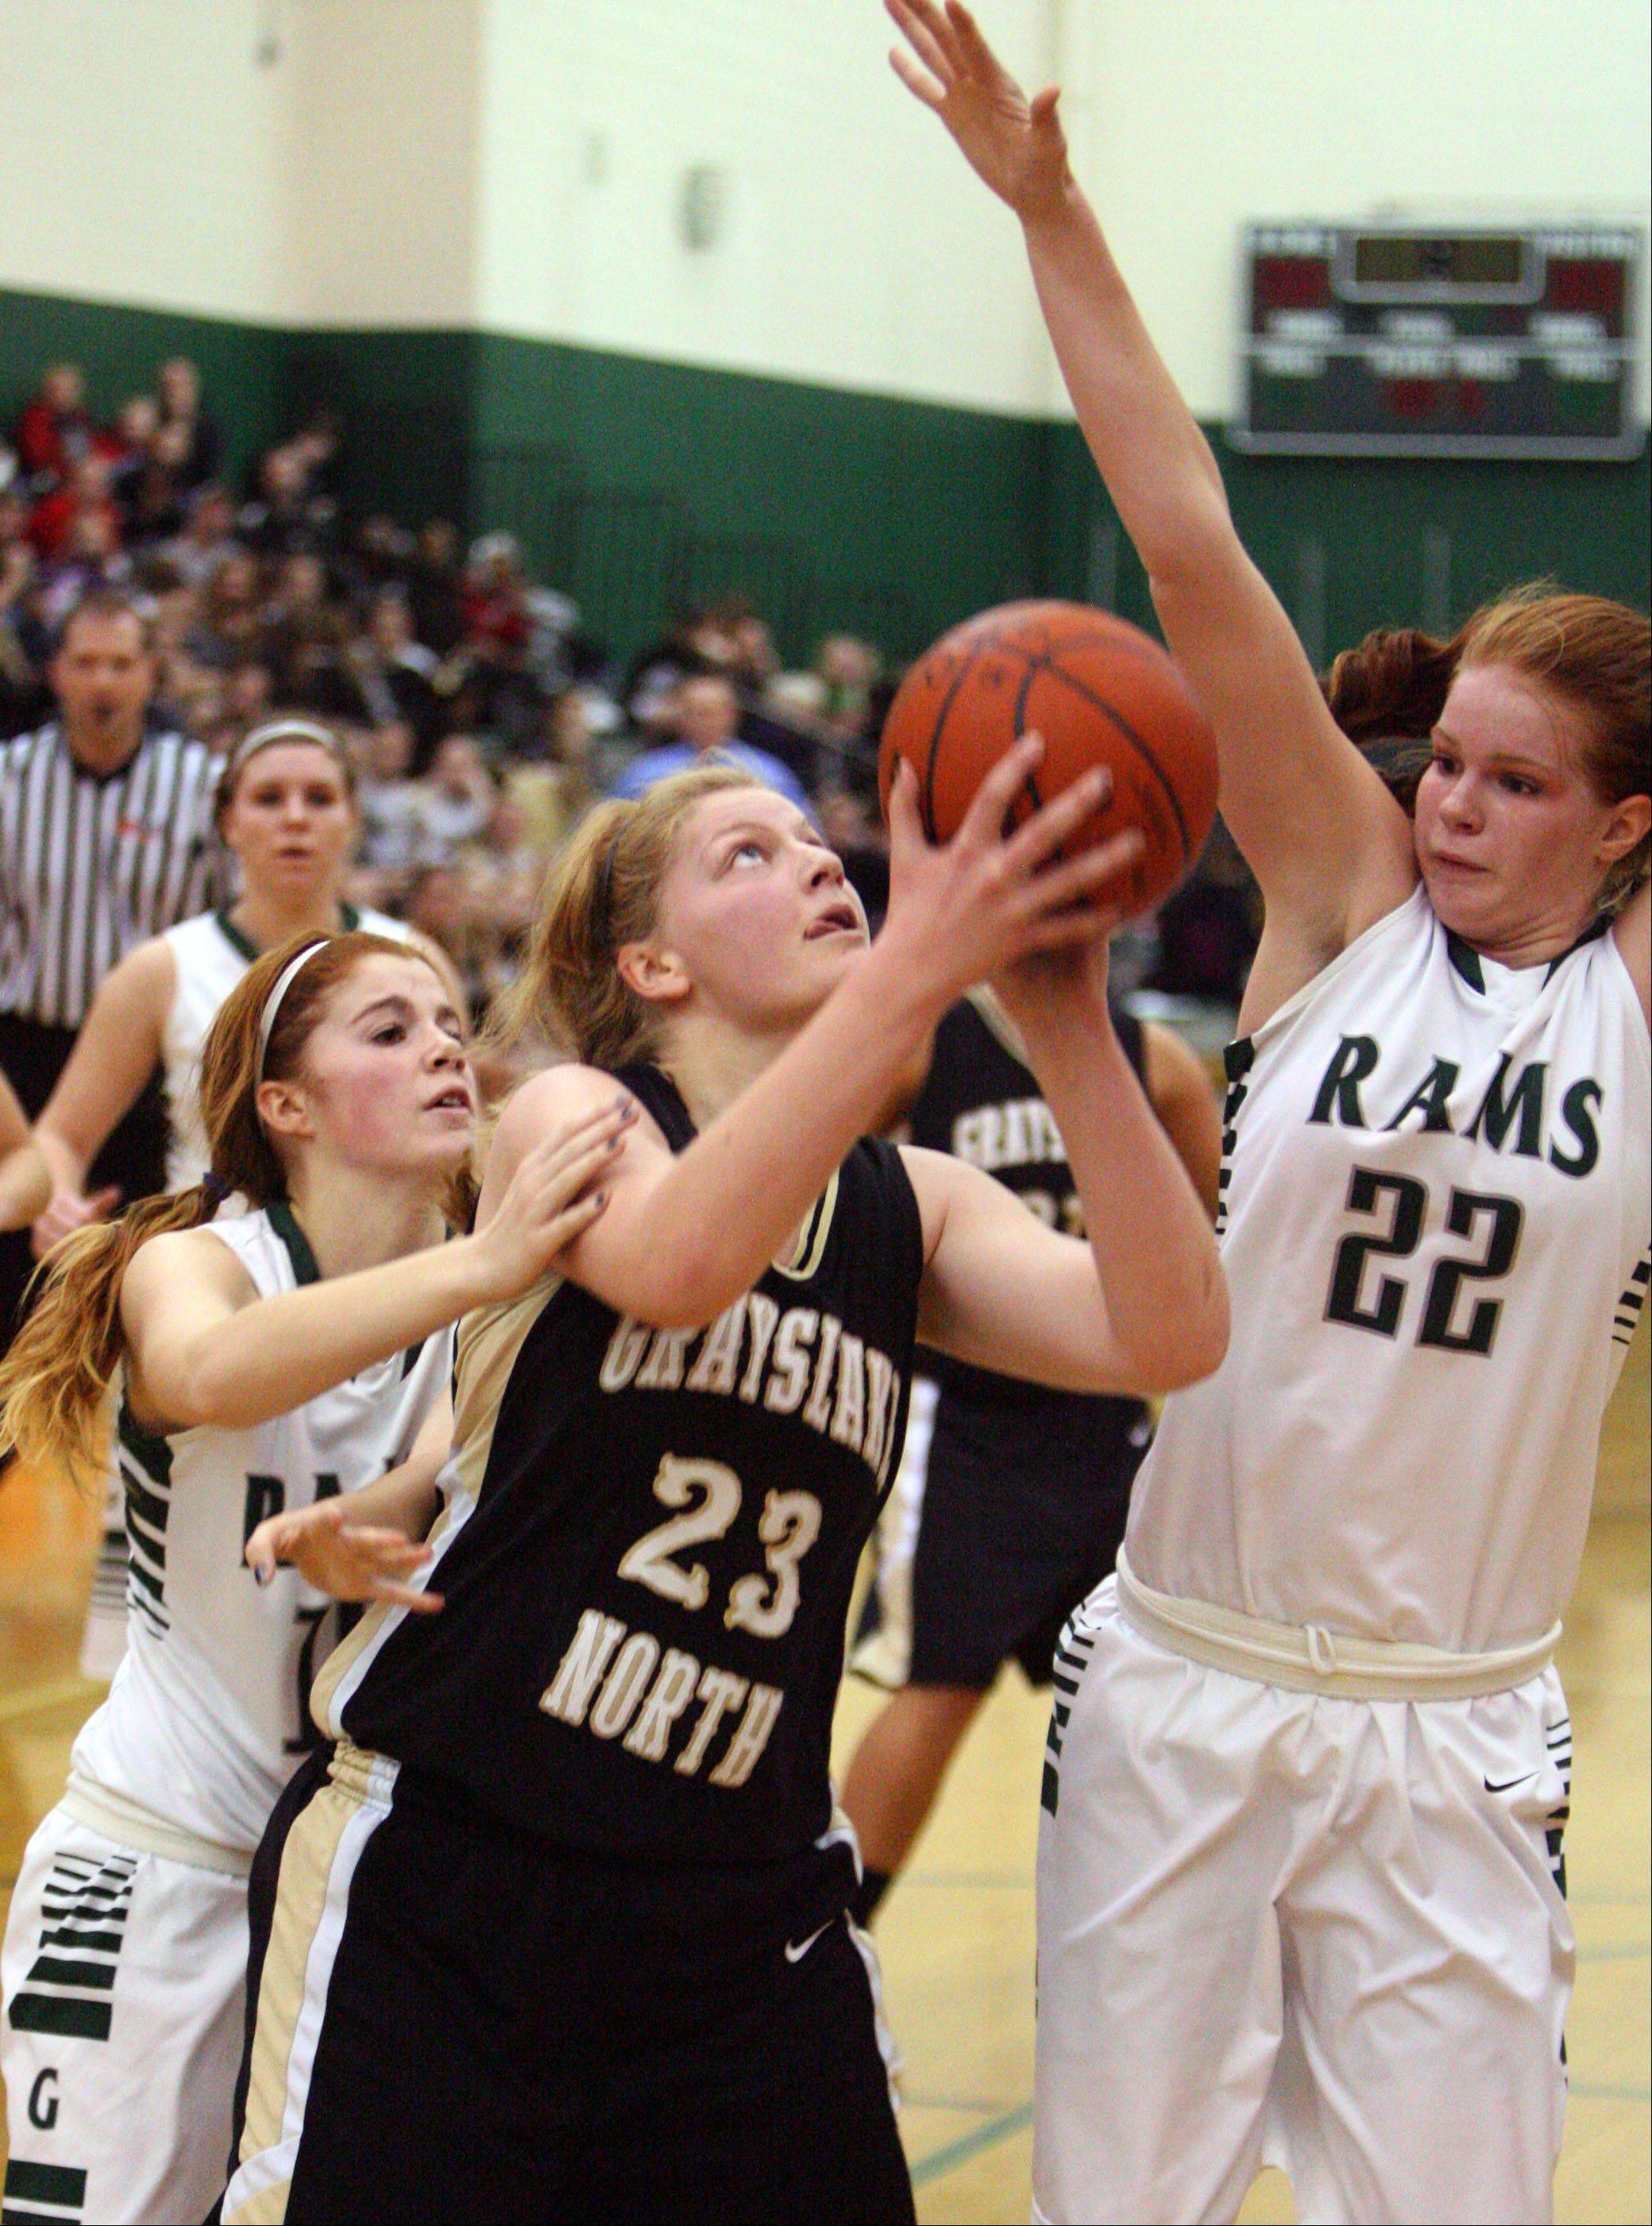 Grayslake North�s Joanna Guhl, center, drives past Grayslake Central�s Lauren Spaulding, left, and Morgan Dahlstrom on Tuesday night at Grayslake Central.